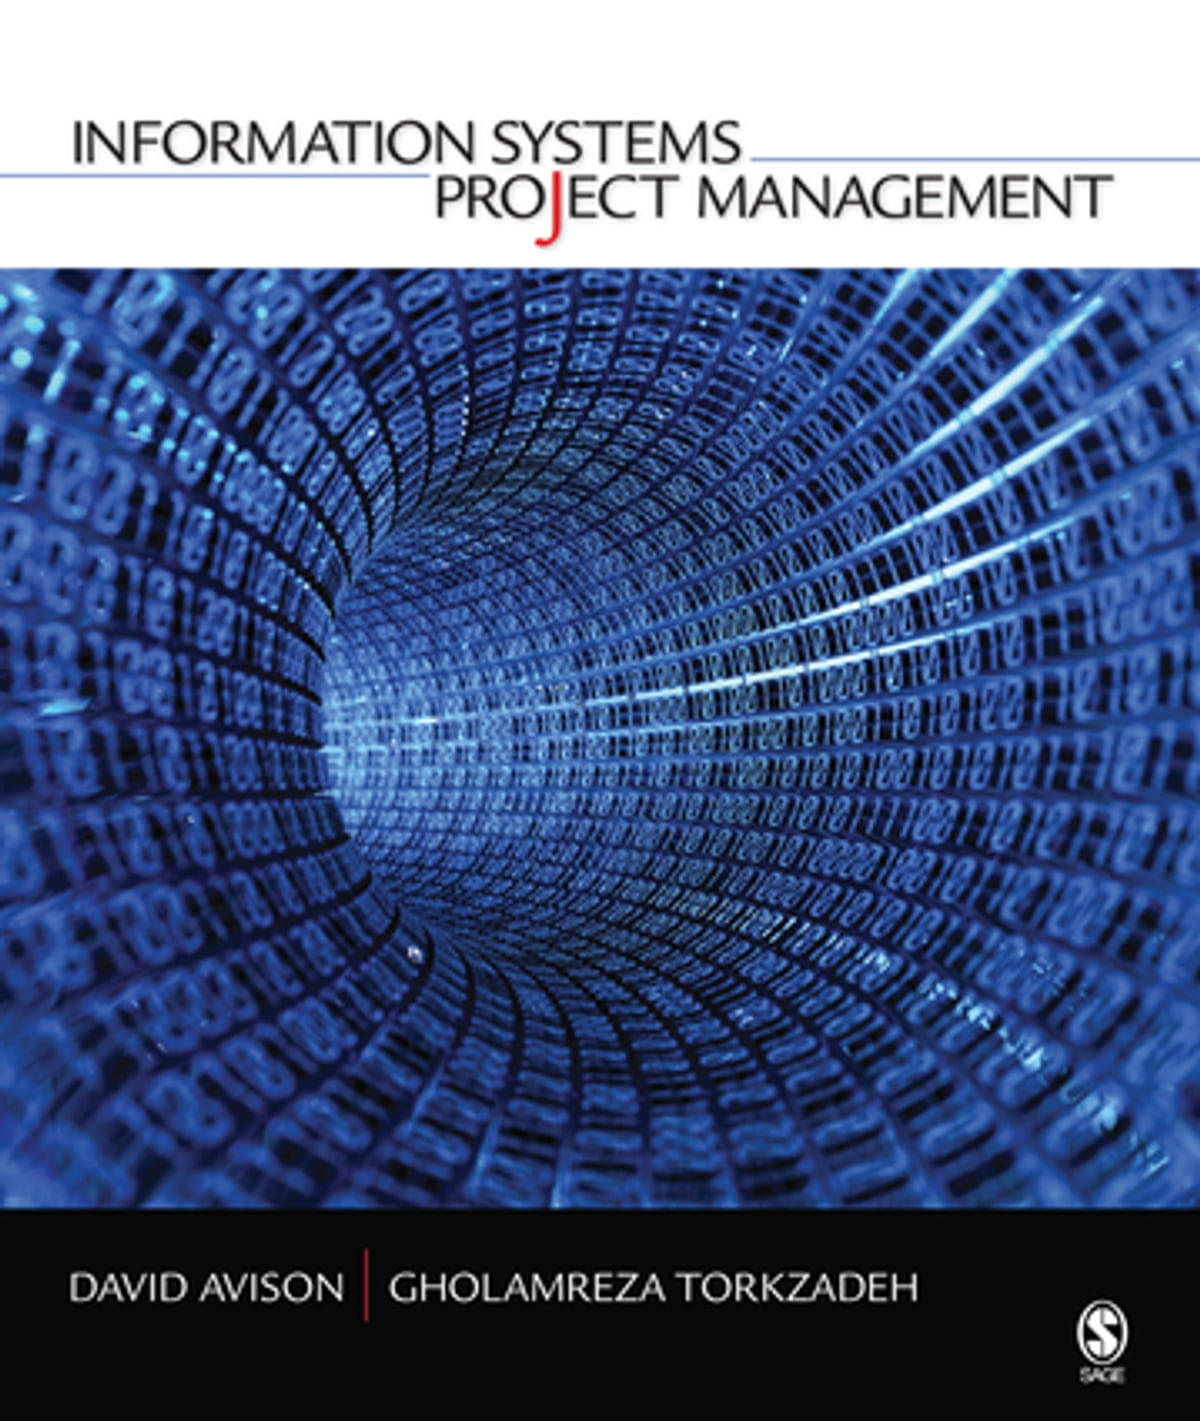 Audiobook capmpmp project management certification swingline information systems project management ebook by david e avison information systems project management information systems project xflitez Image collections